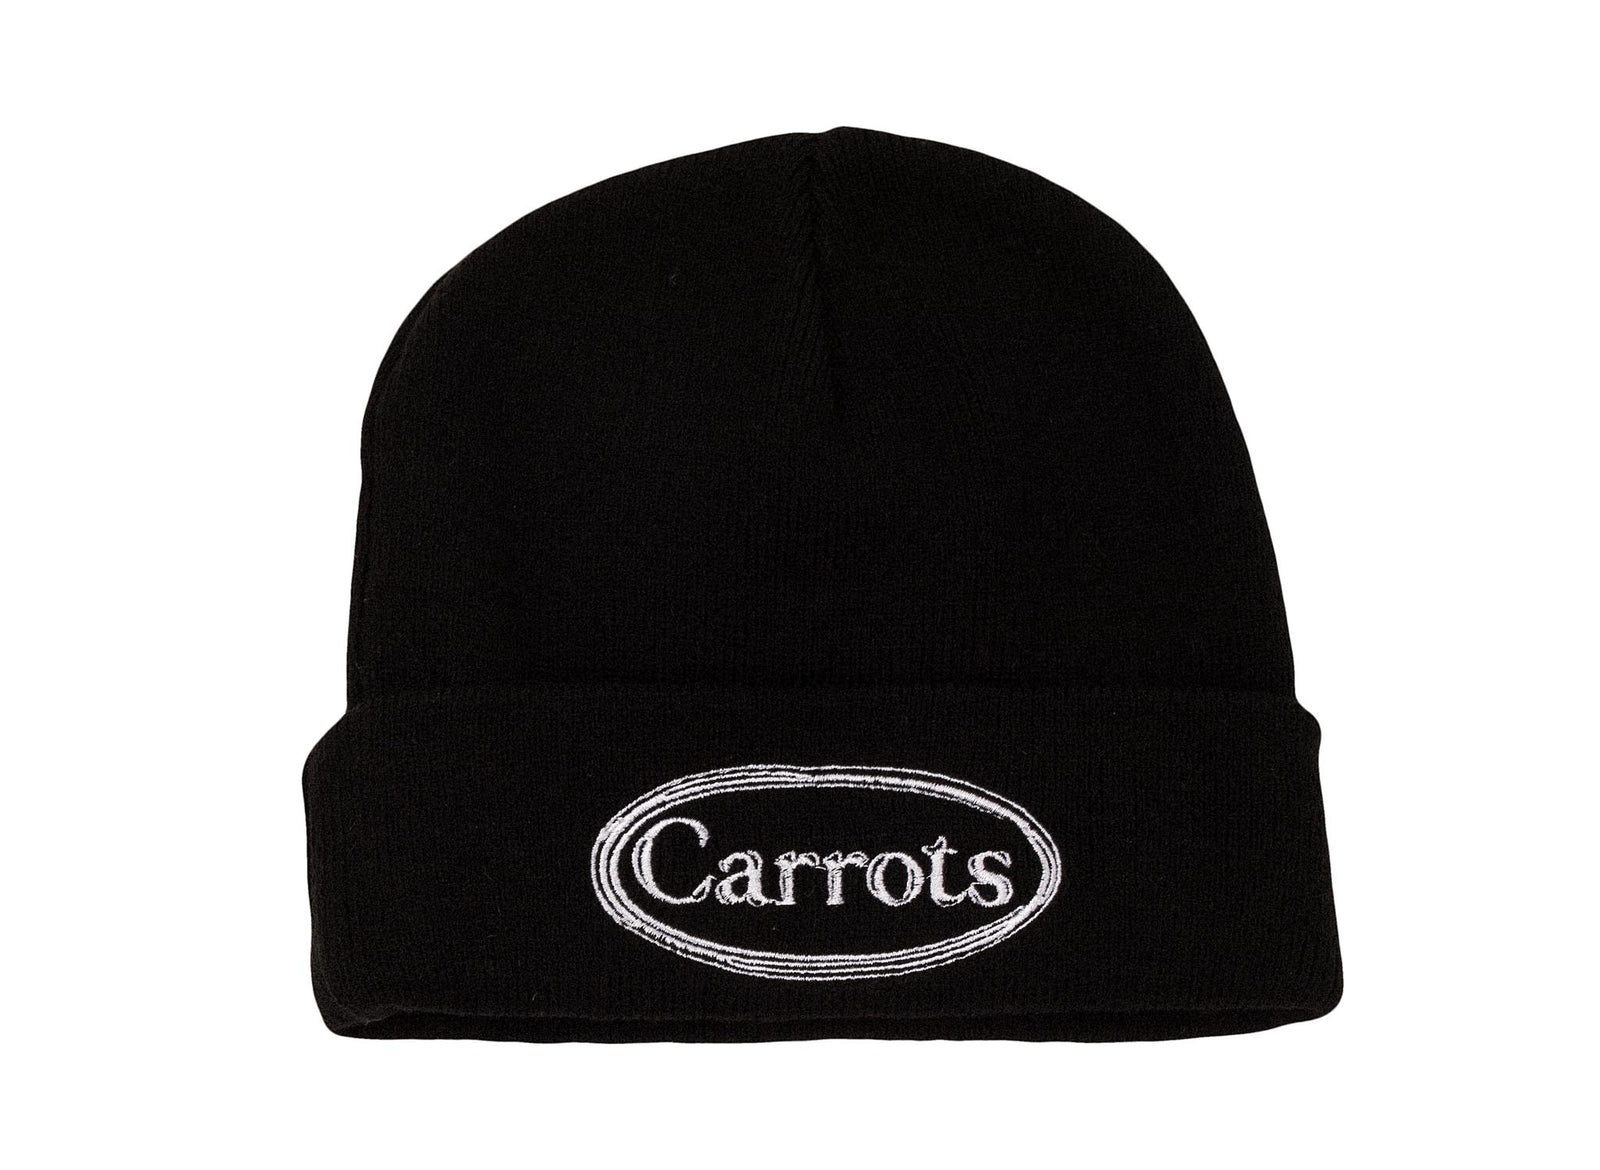 7c02be2b0db CARROTS OVAL WORDMARK KNIT BEANIE